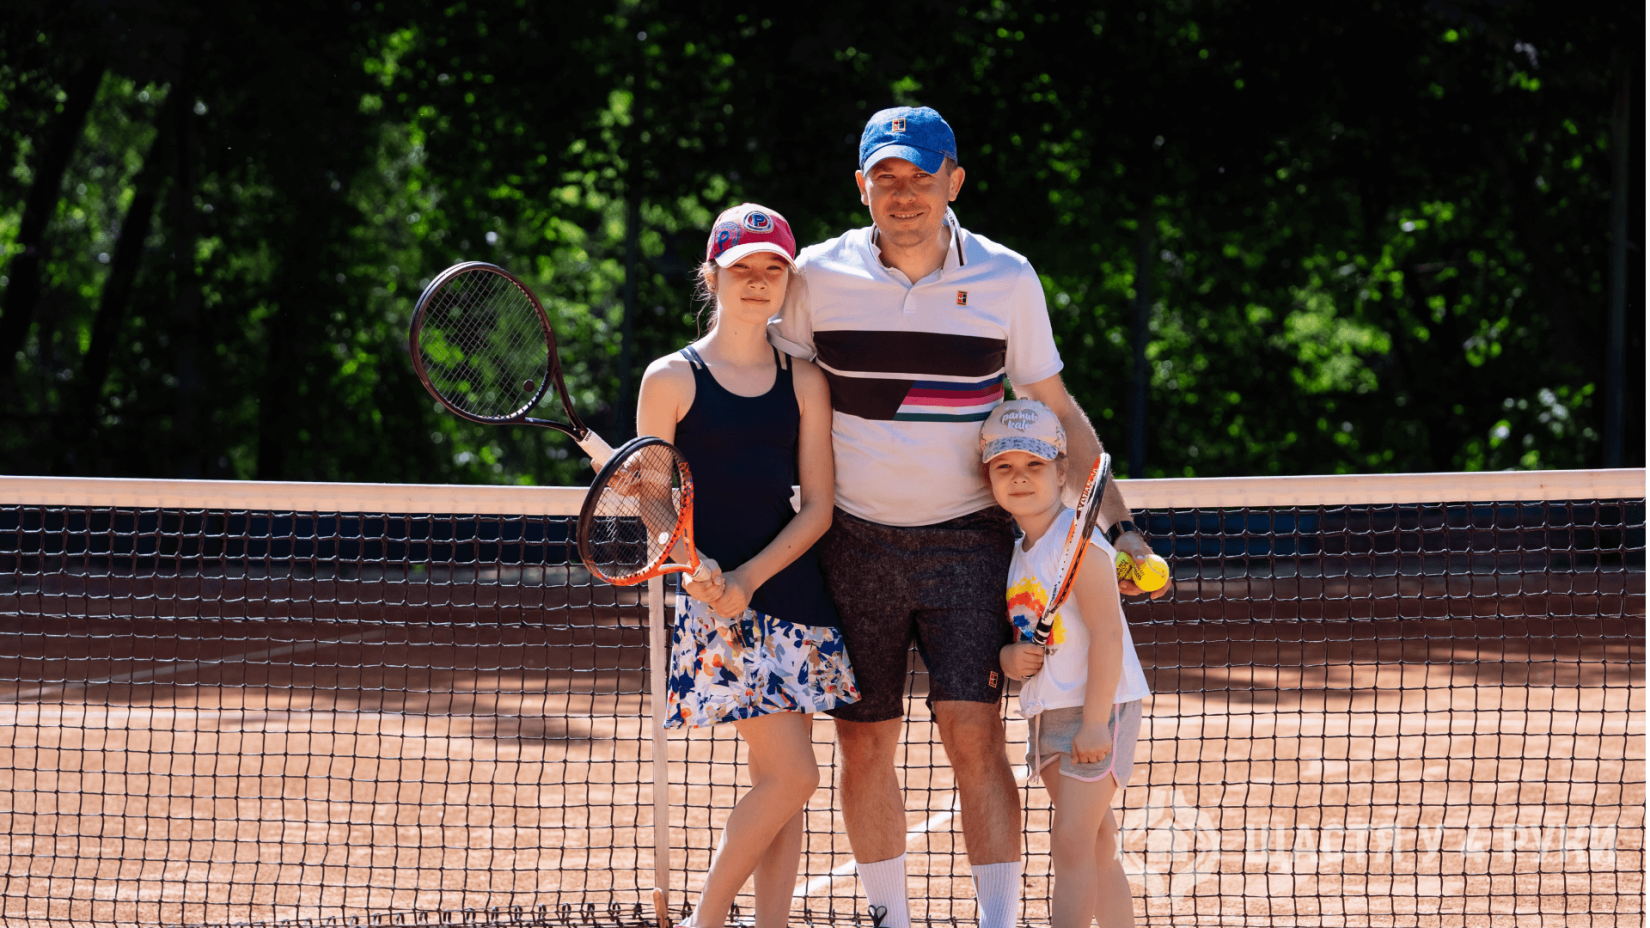 Ivan Krulko with daughters Anna and Khrystyna